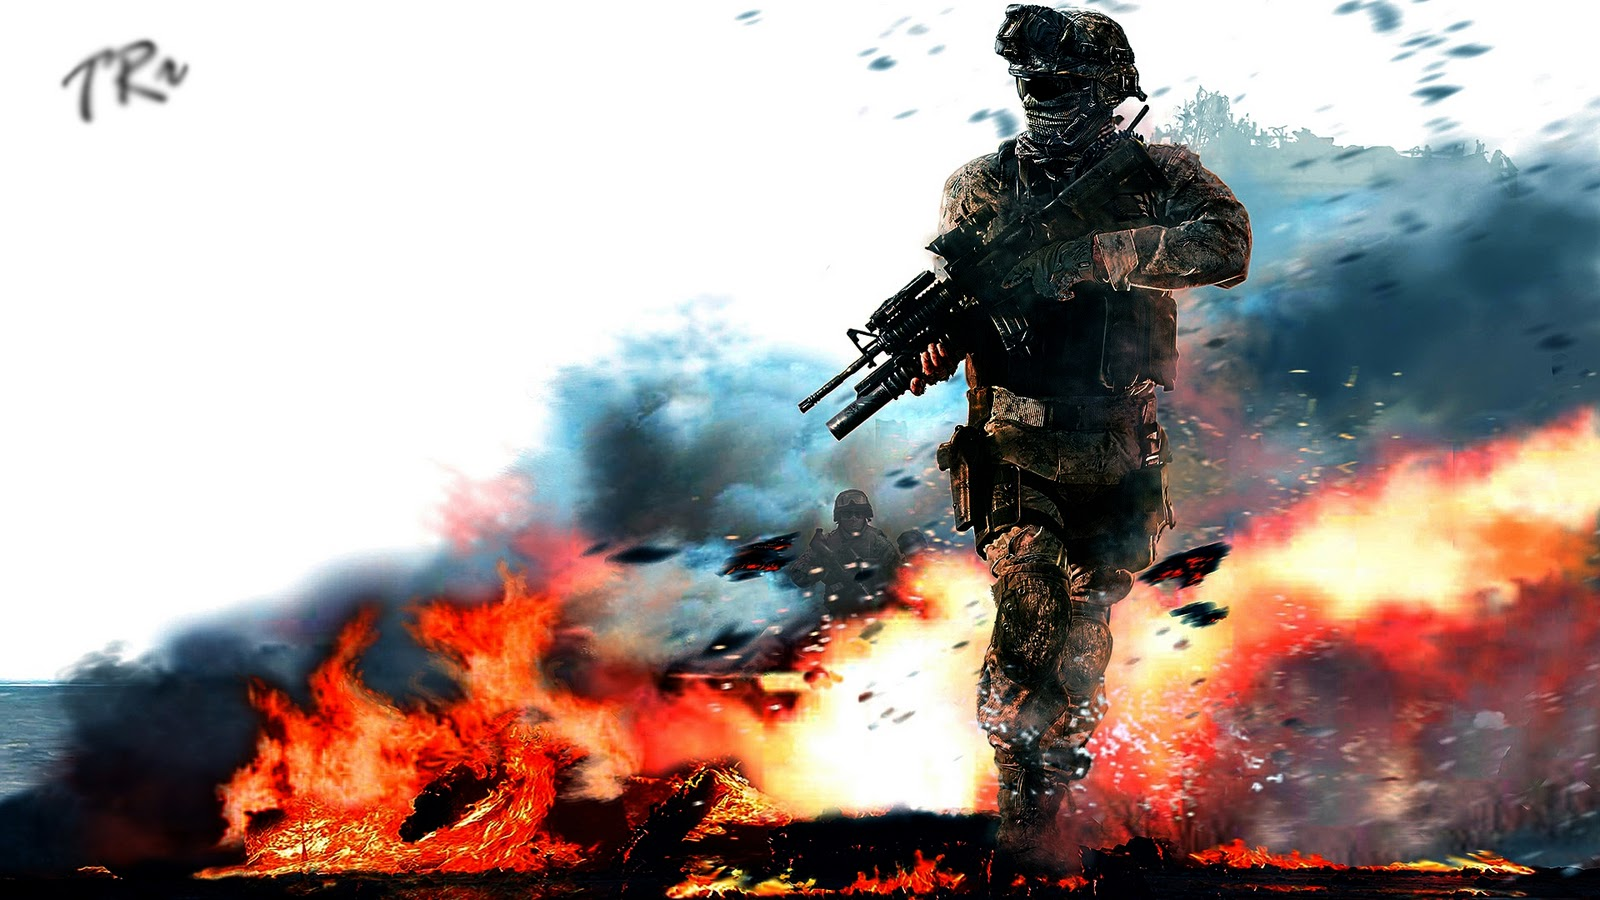 Call of Duty Black Ops │HD Wallpapers 1900x1200 | Desktop Wallpapers